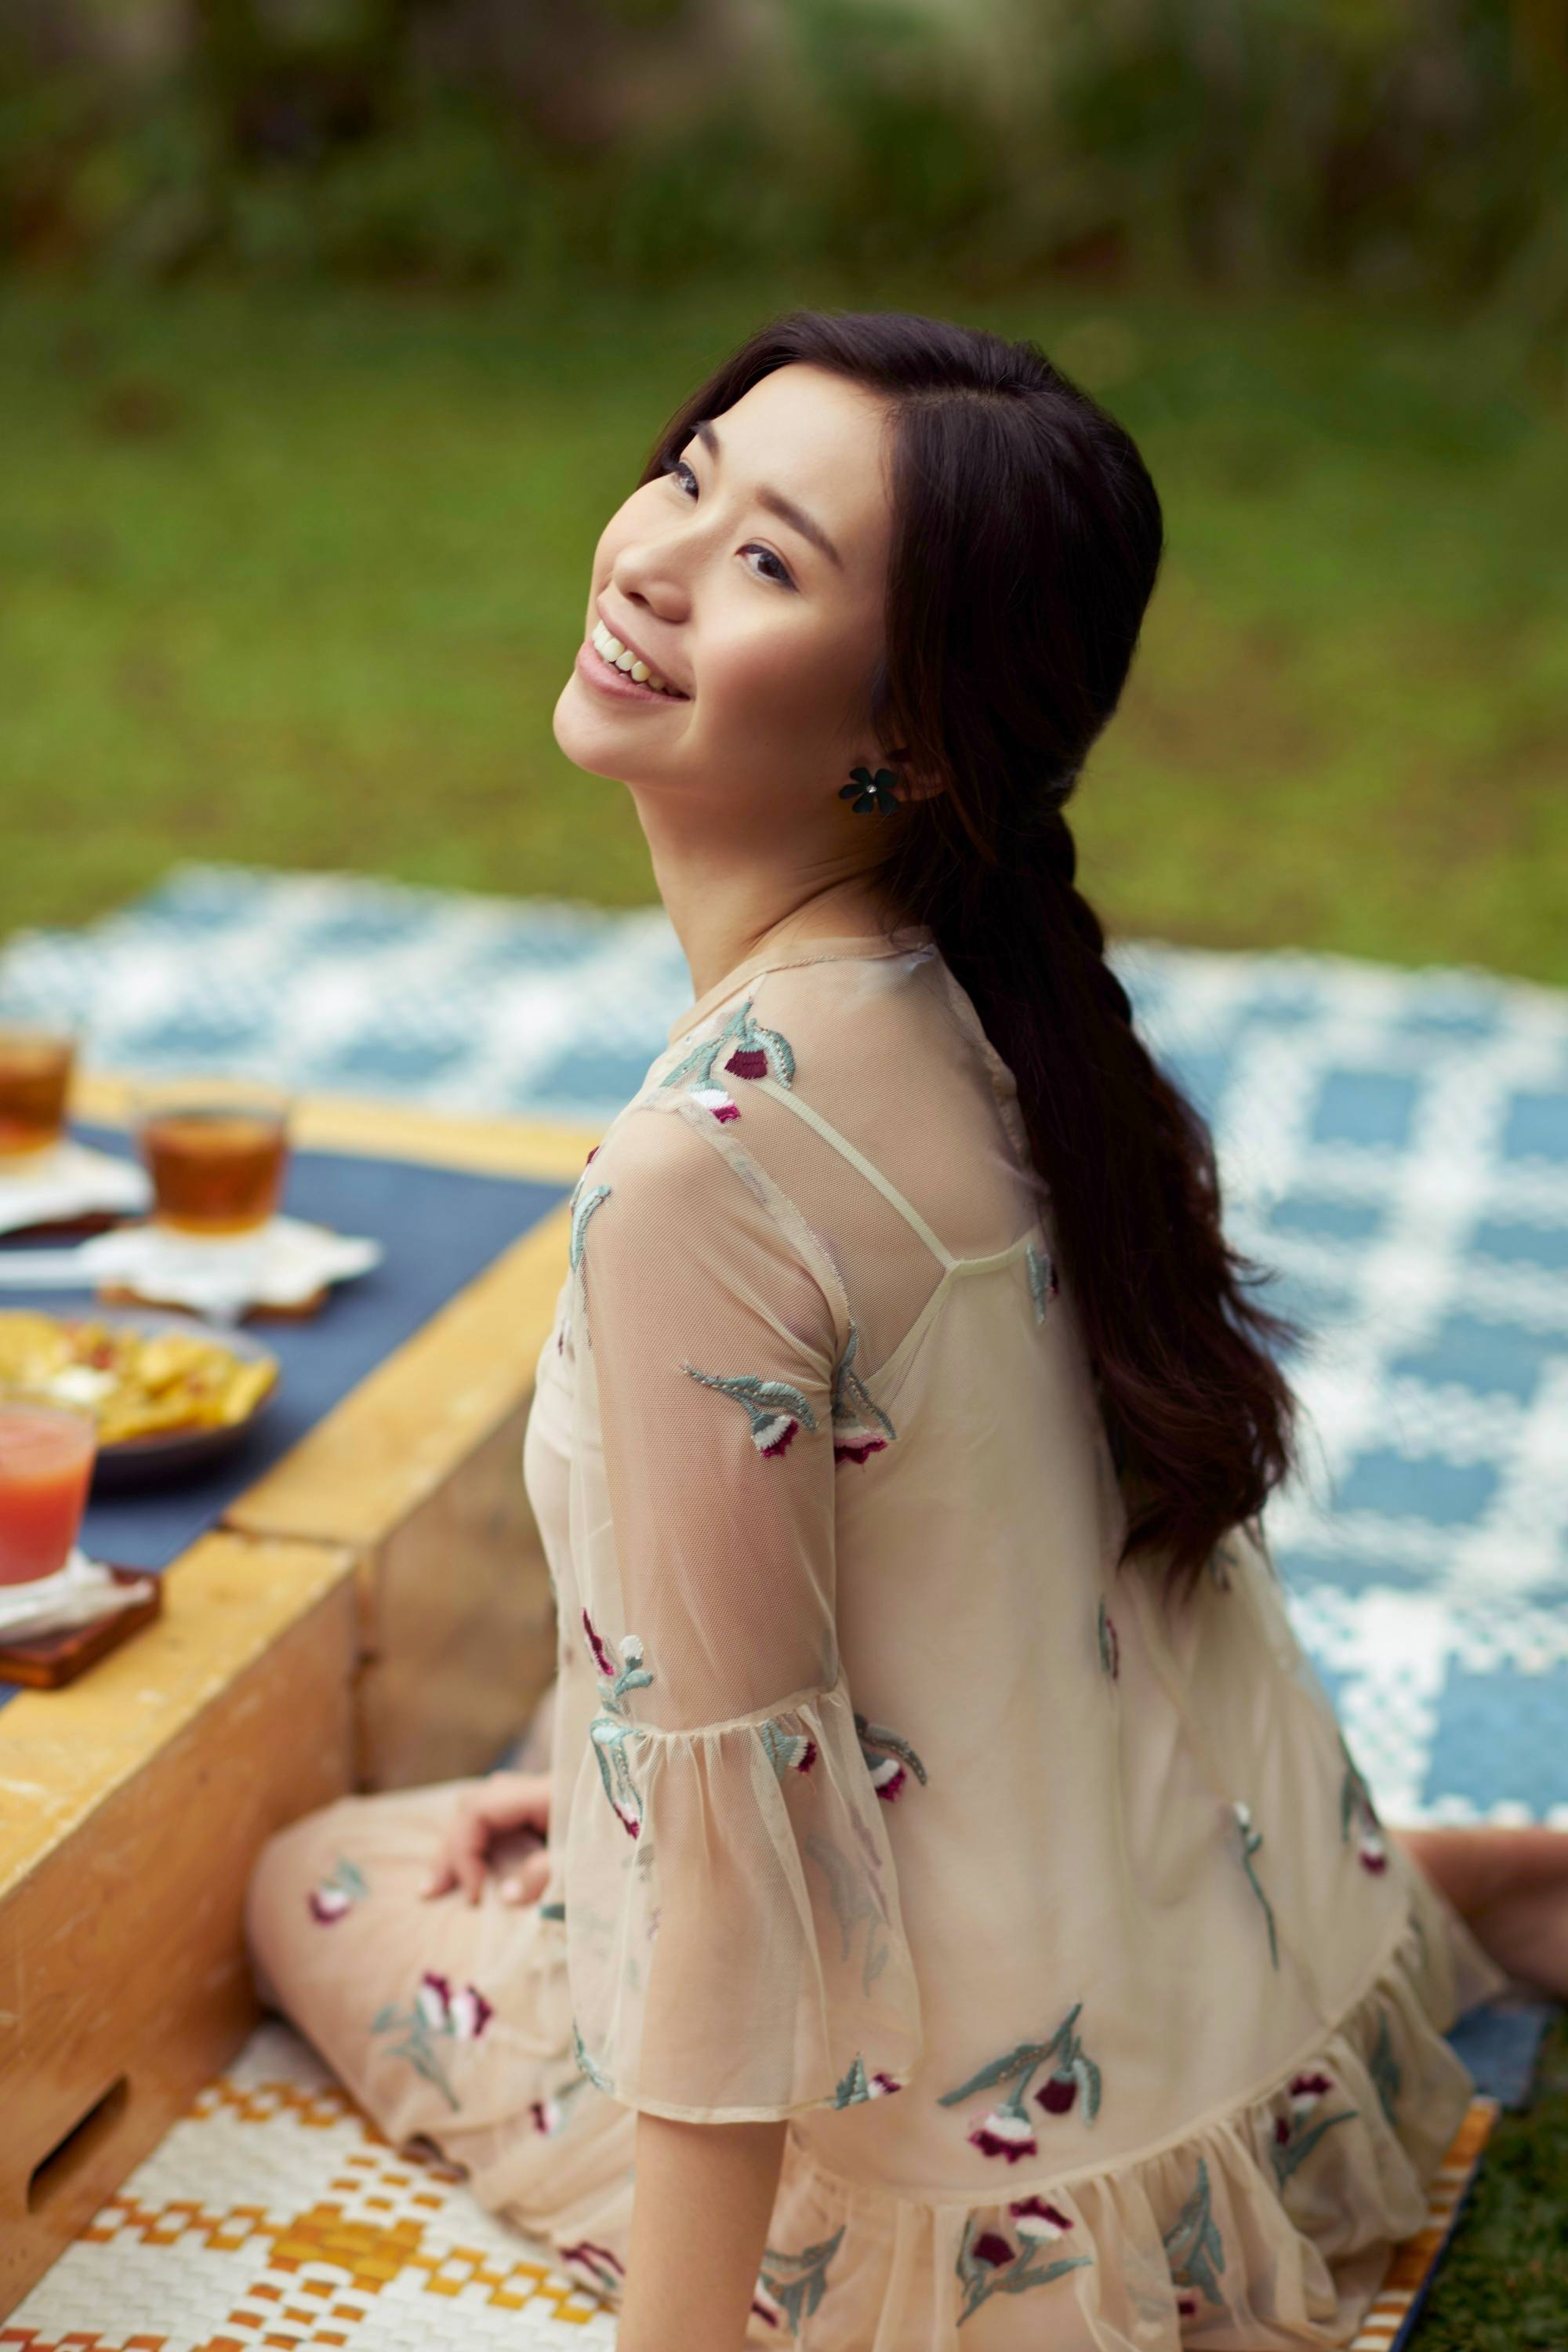 Half ponytail: Asian woman with long dark hair in braided half updo wearing a dress and sitting on a picnic mat